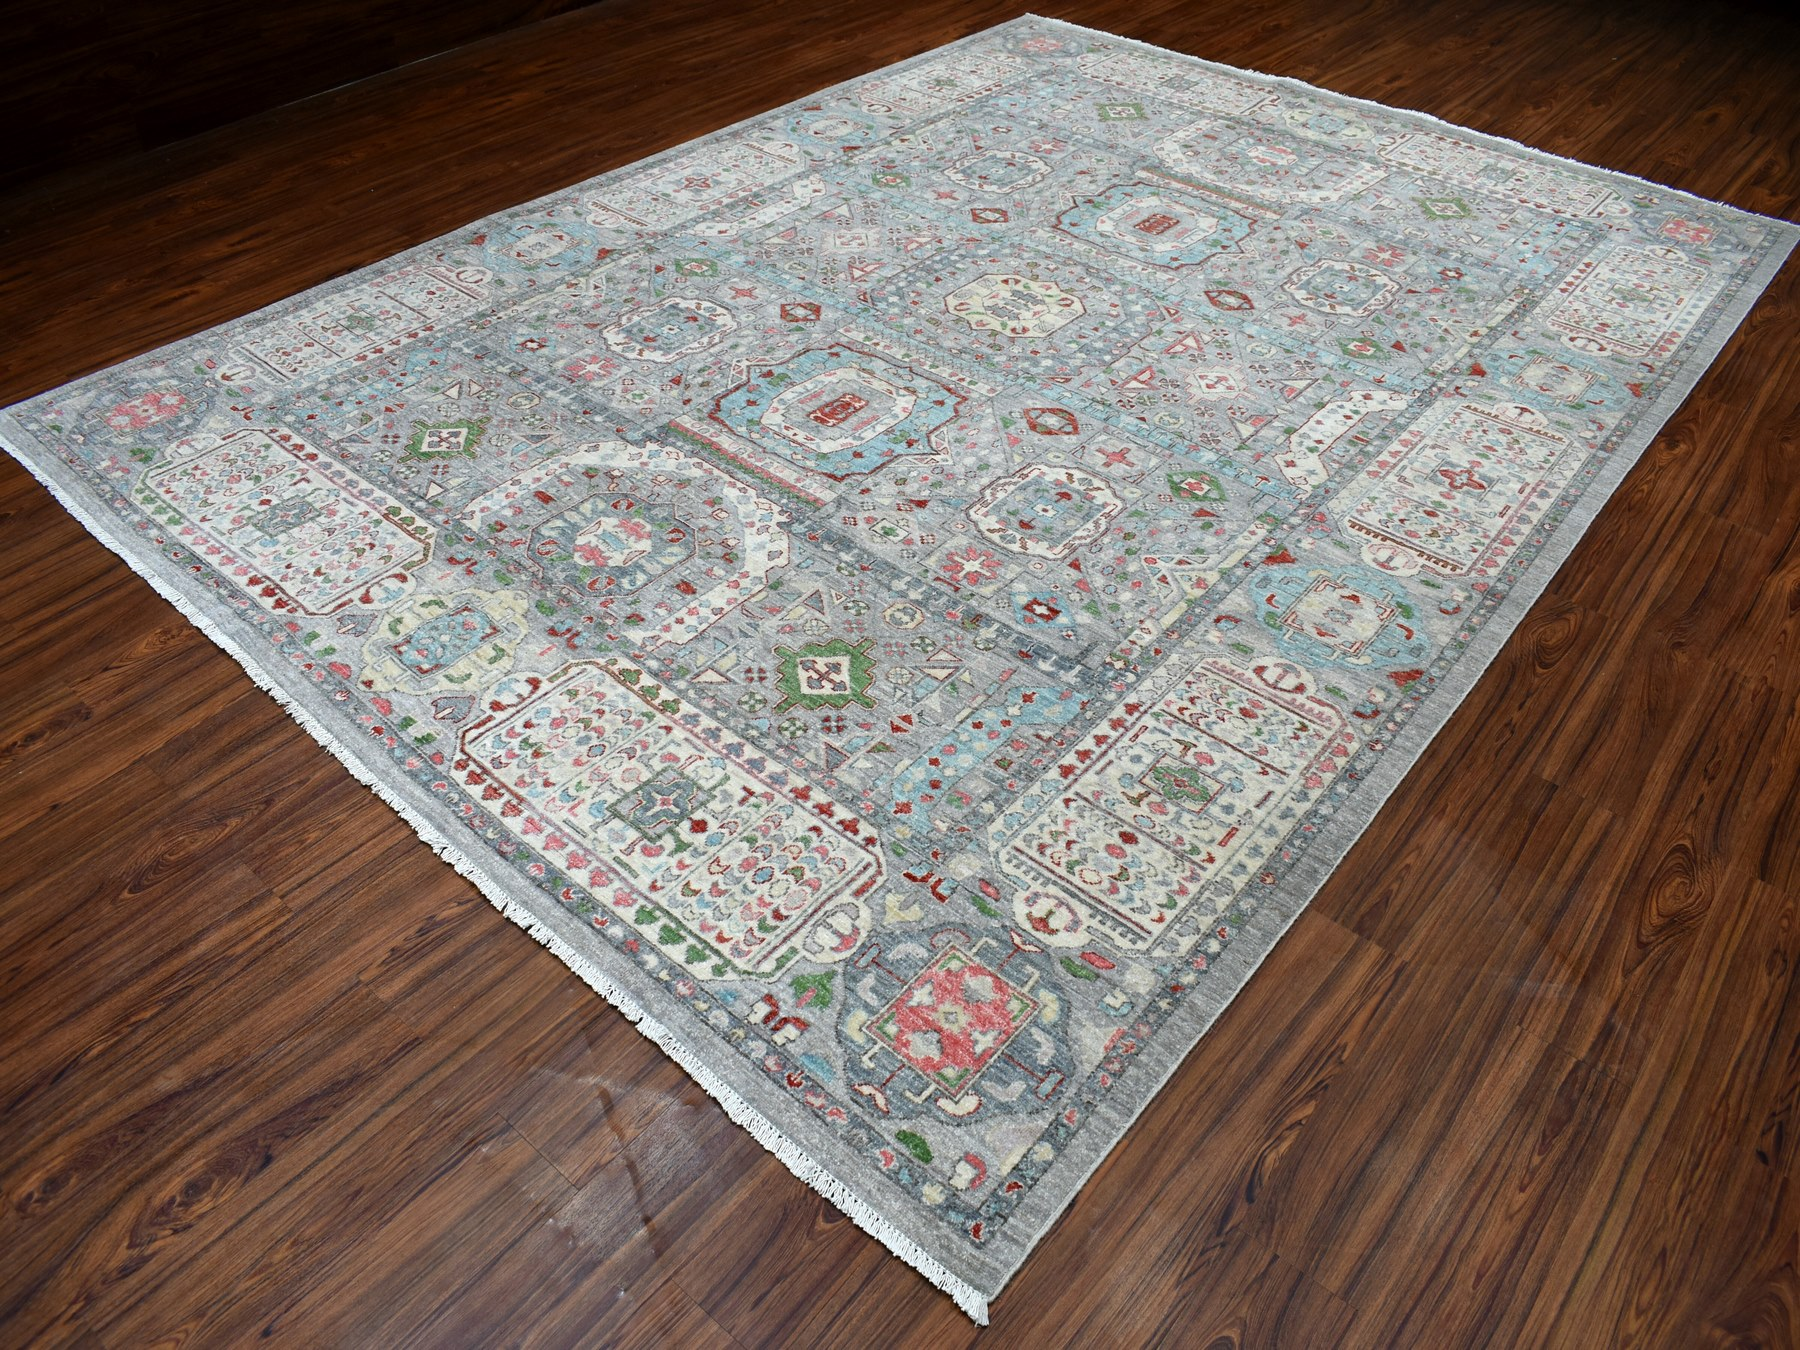 Transitional Wool Hand-Knotted Area Rug 8'10